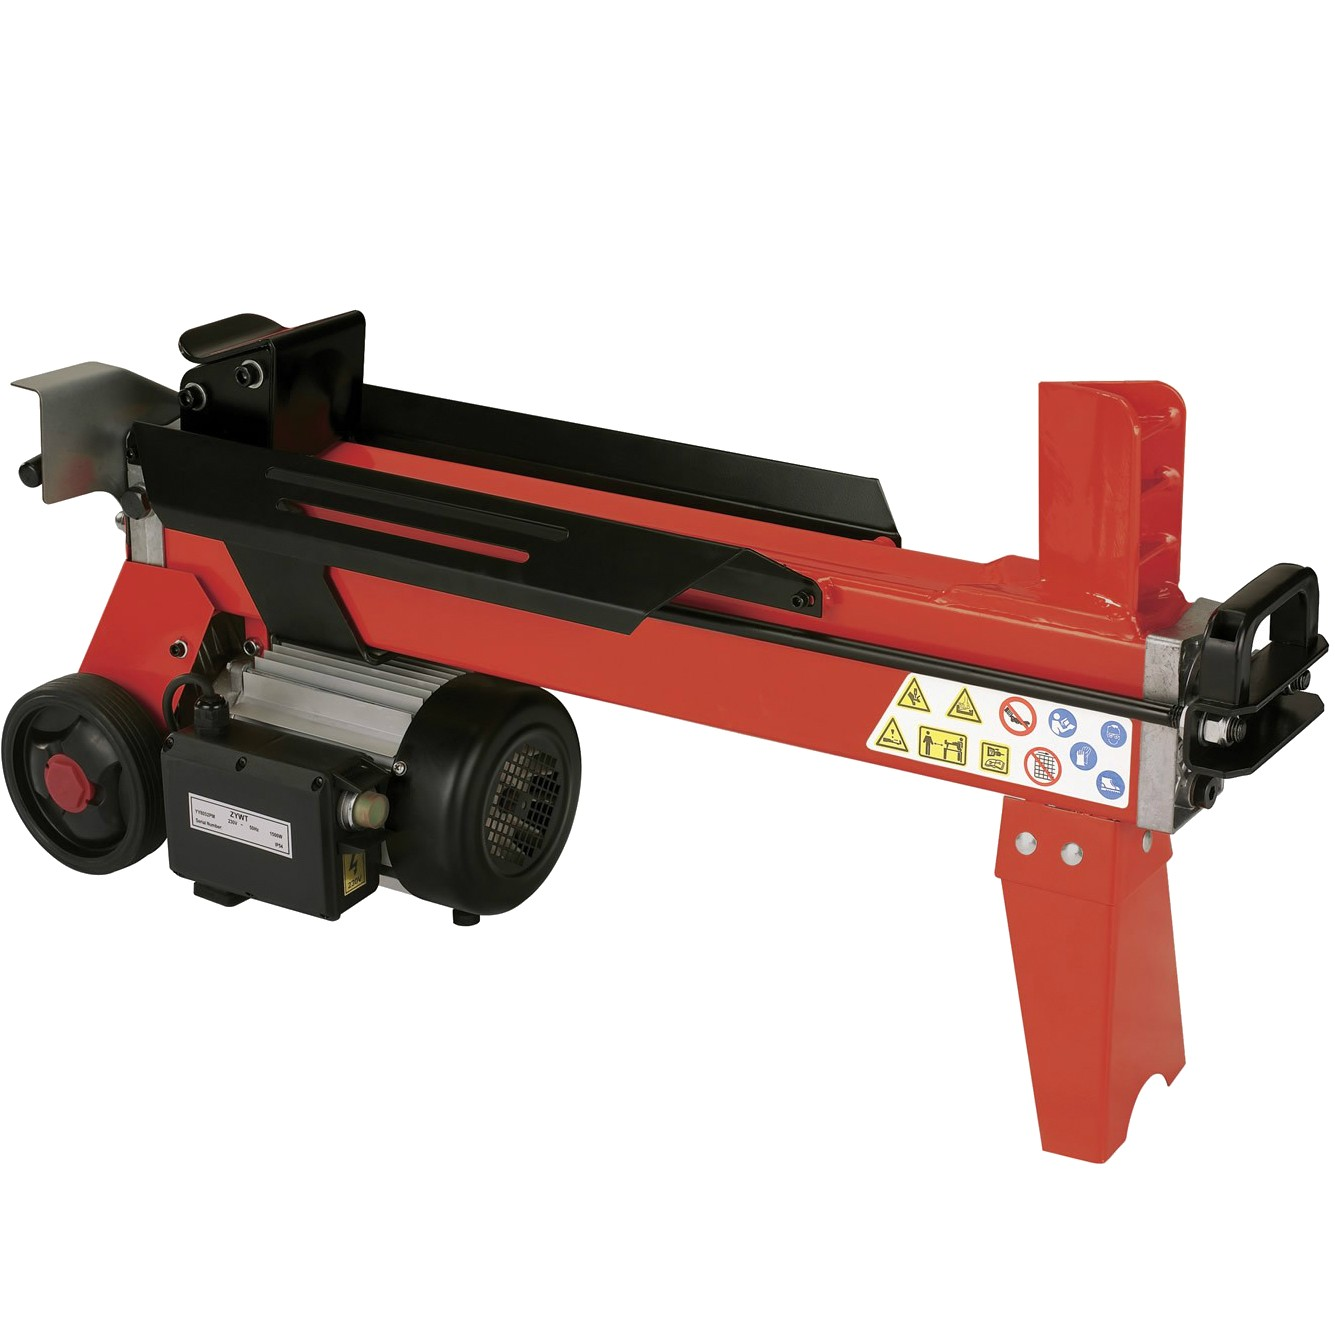 MD Racing 5-Ton Electric Log-Splitter (Special Offer)